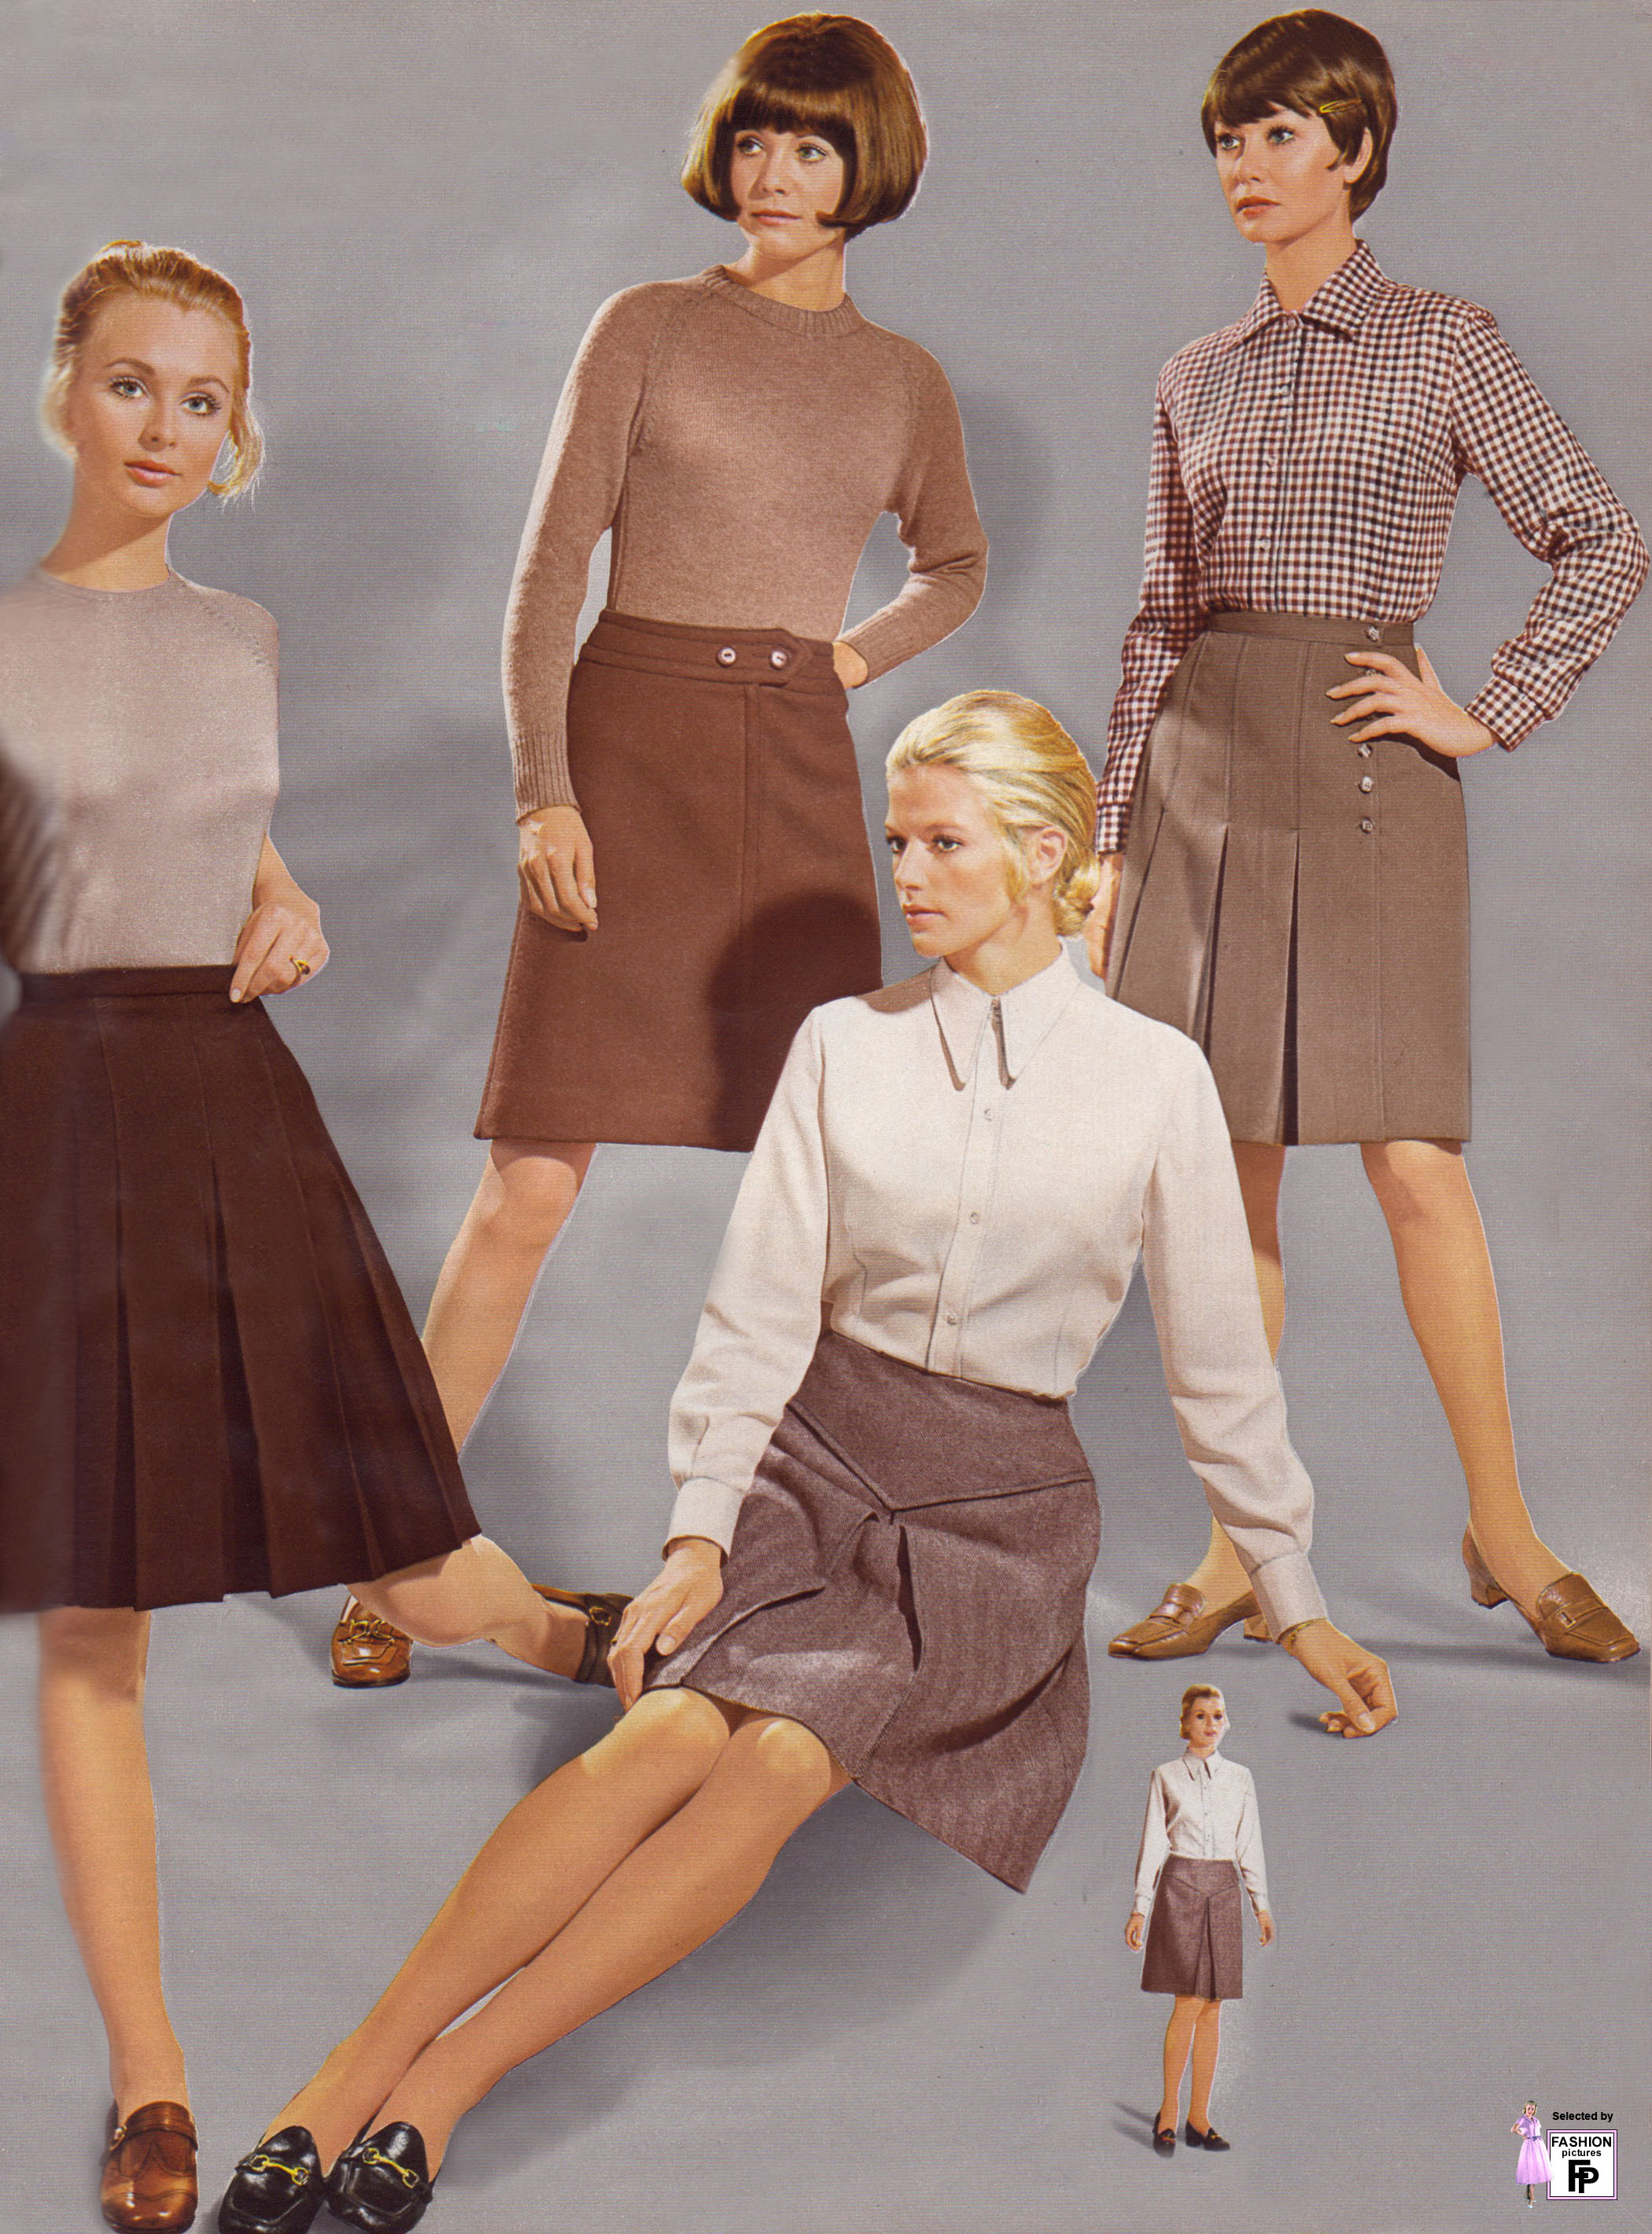 Retro fashion pictures from the 1950s 1960s 1970s 1980s ...